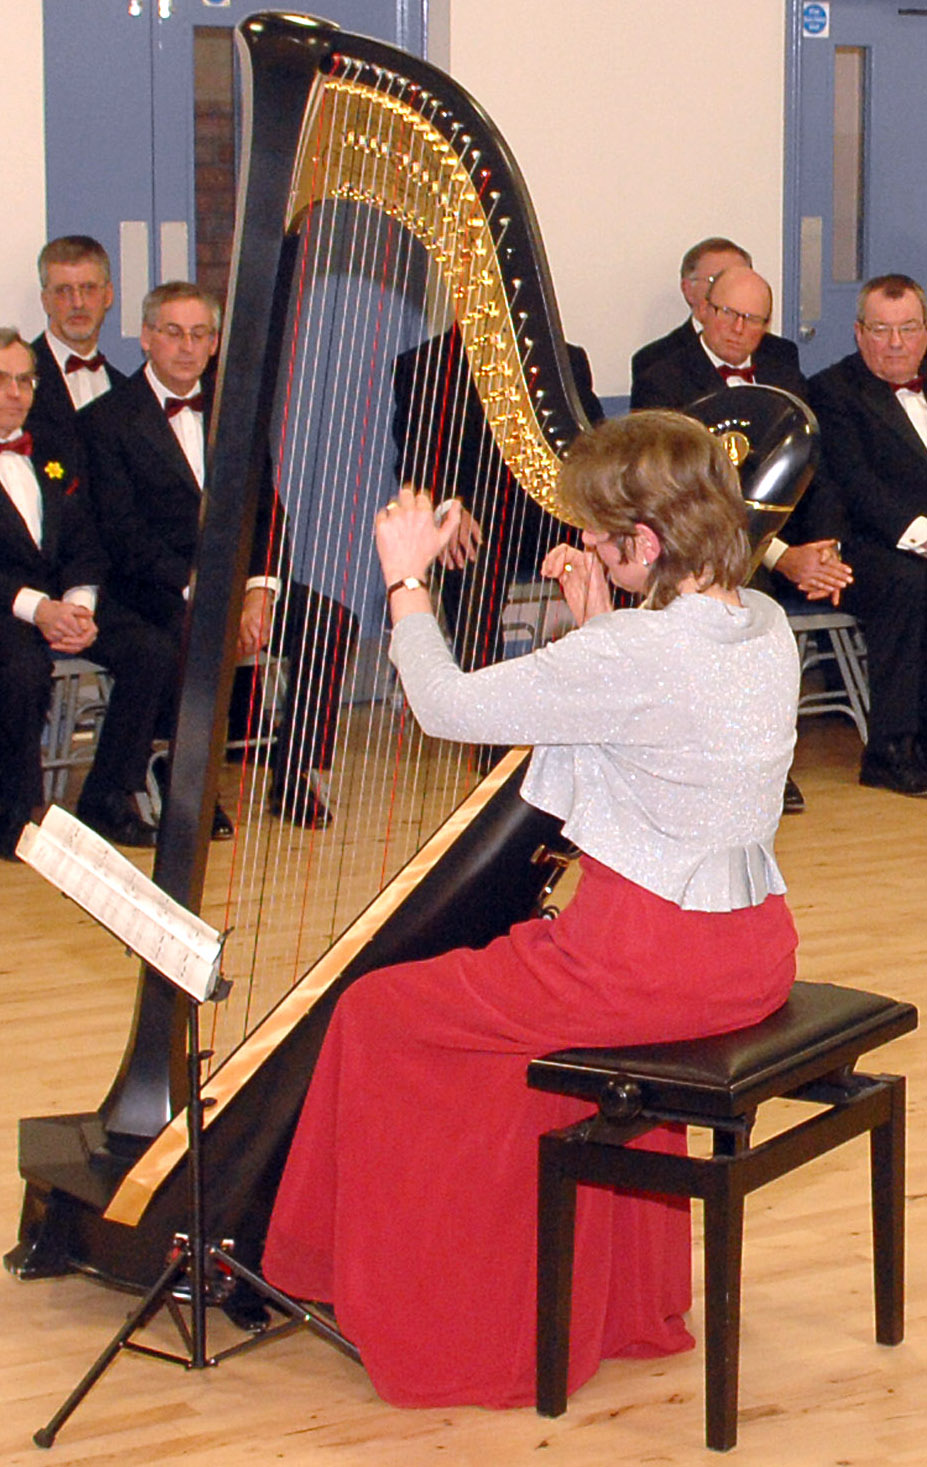 20150227 NDMVC Penny-Robin Riddering performs at Welsh Night concert 3a